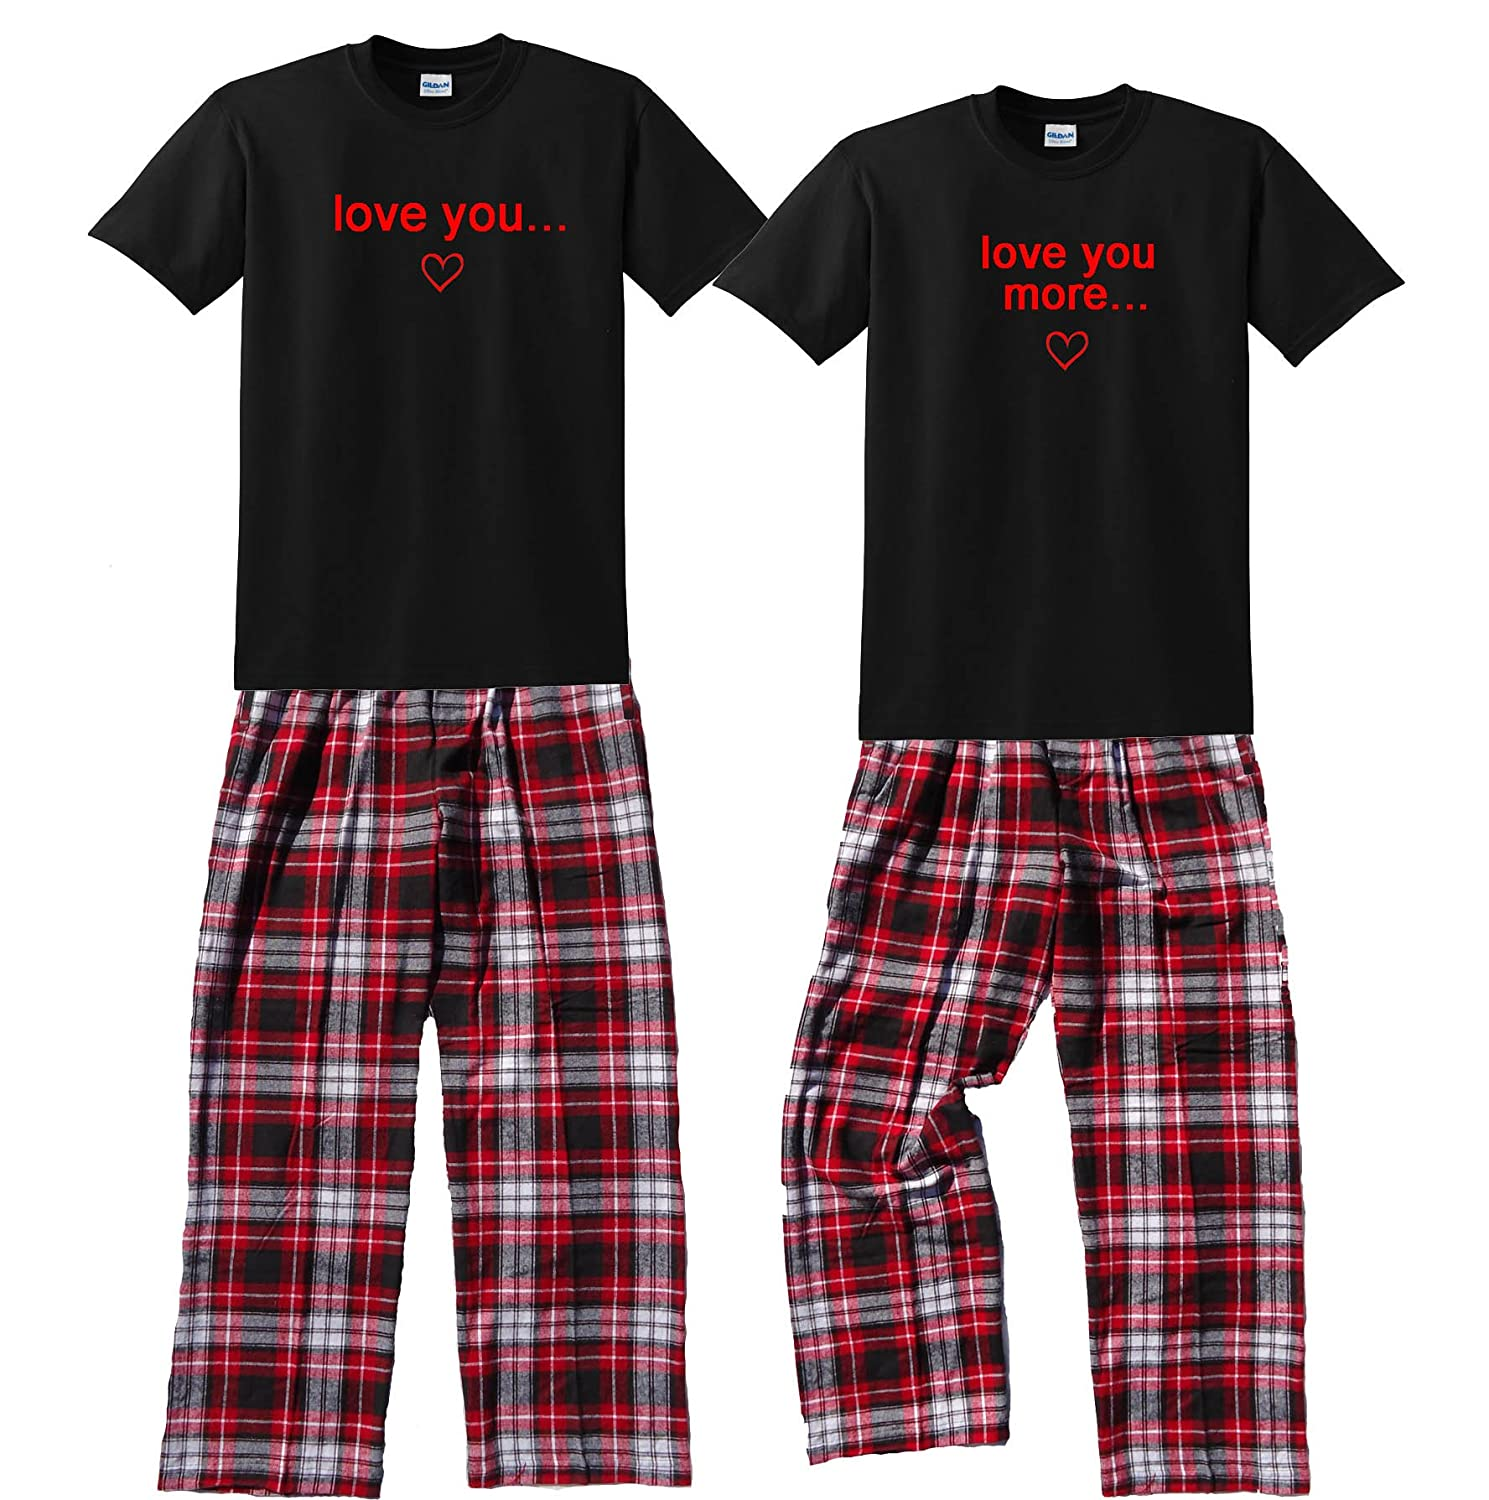 Footsteps Clothing Love You & Love You More Couples Pajamas; Each Shirt-Pant Set